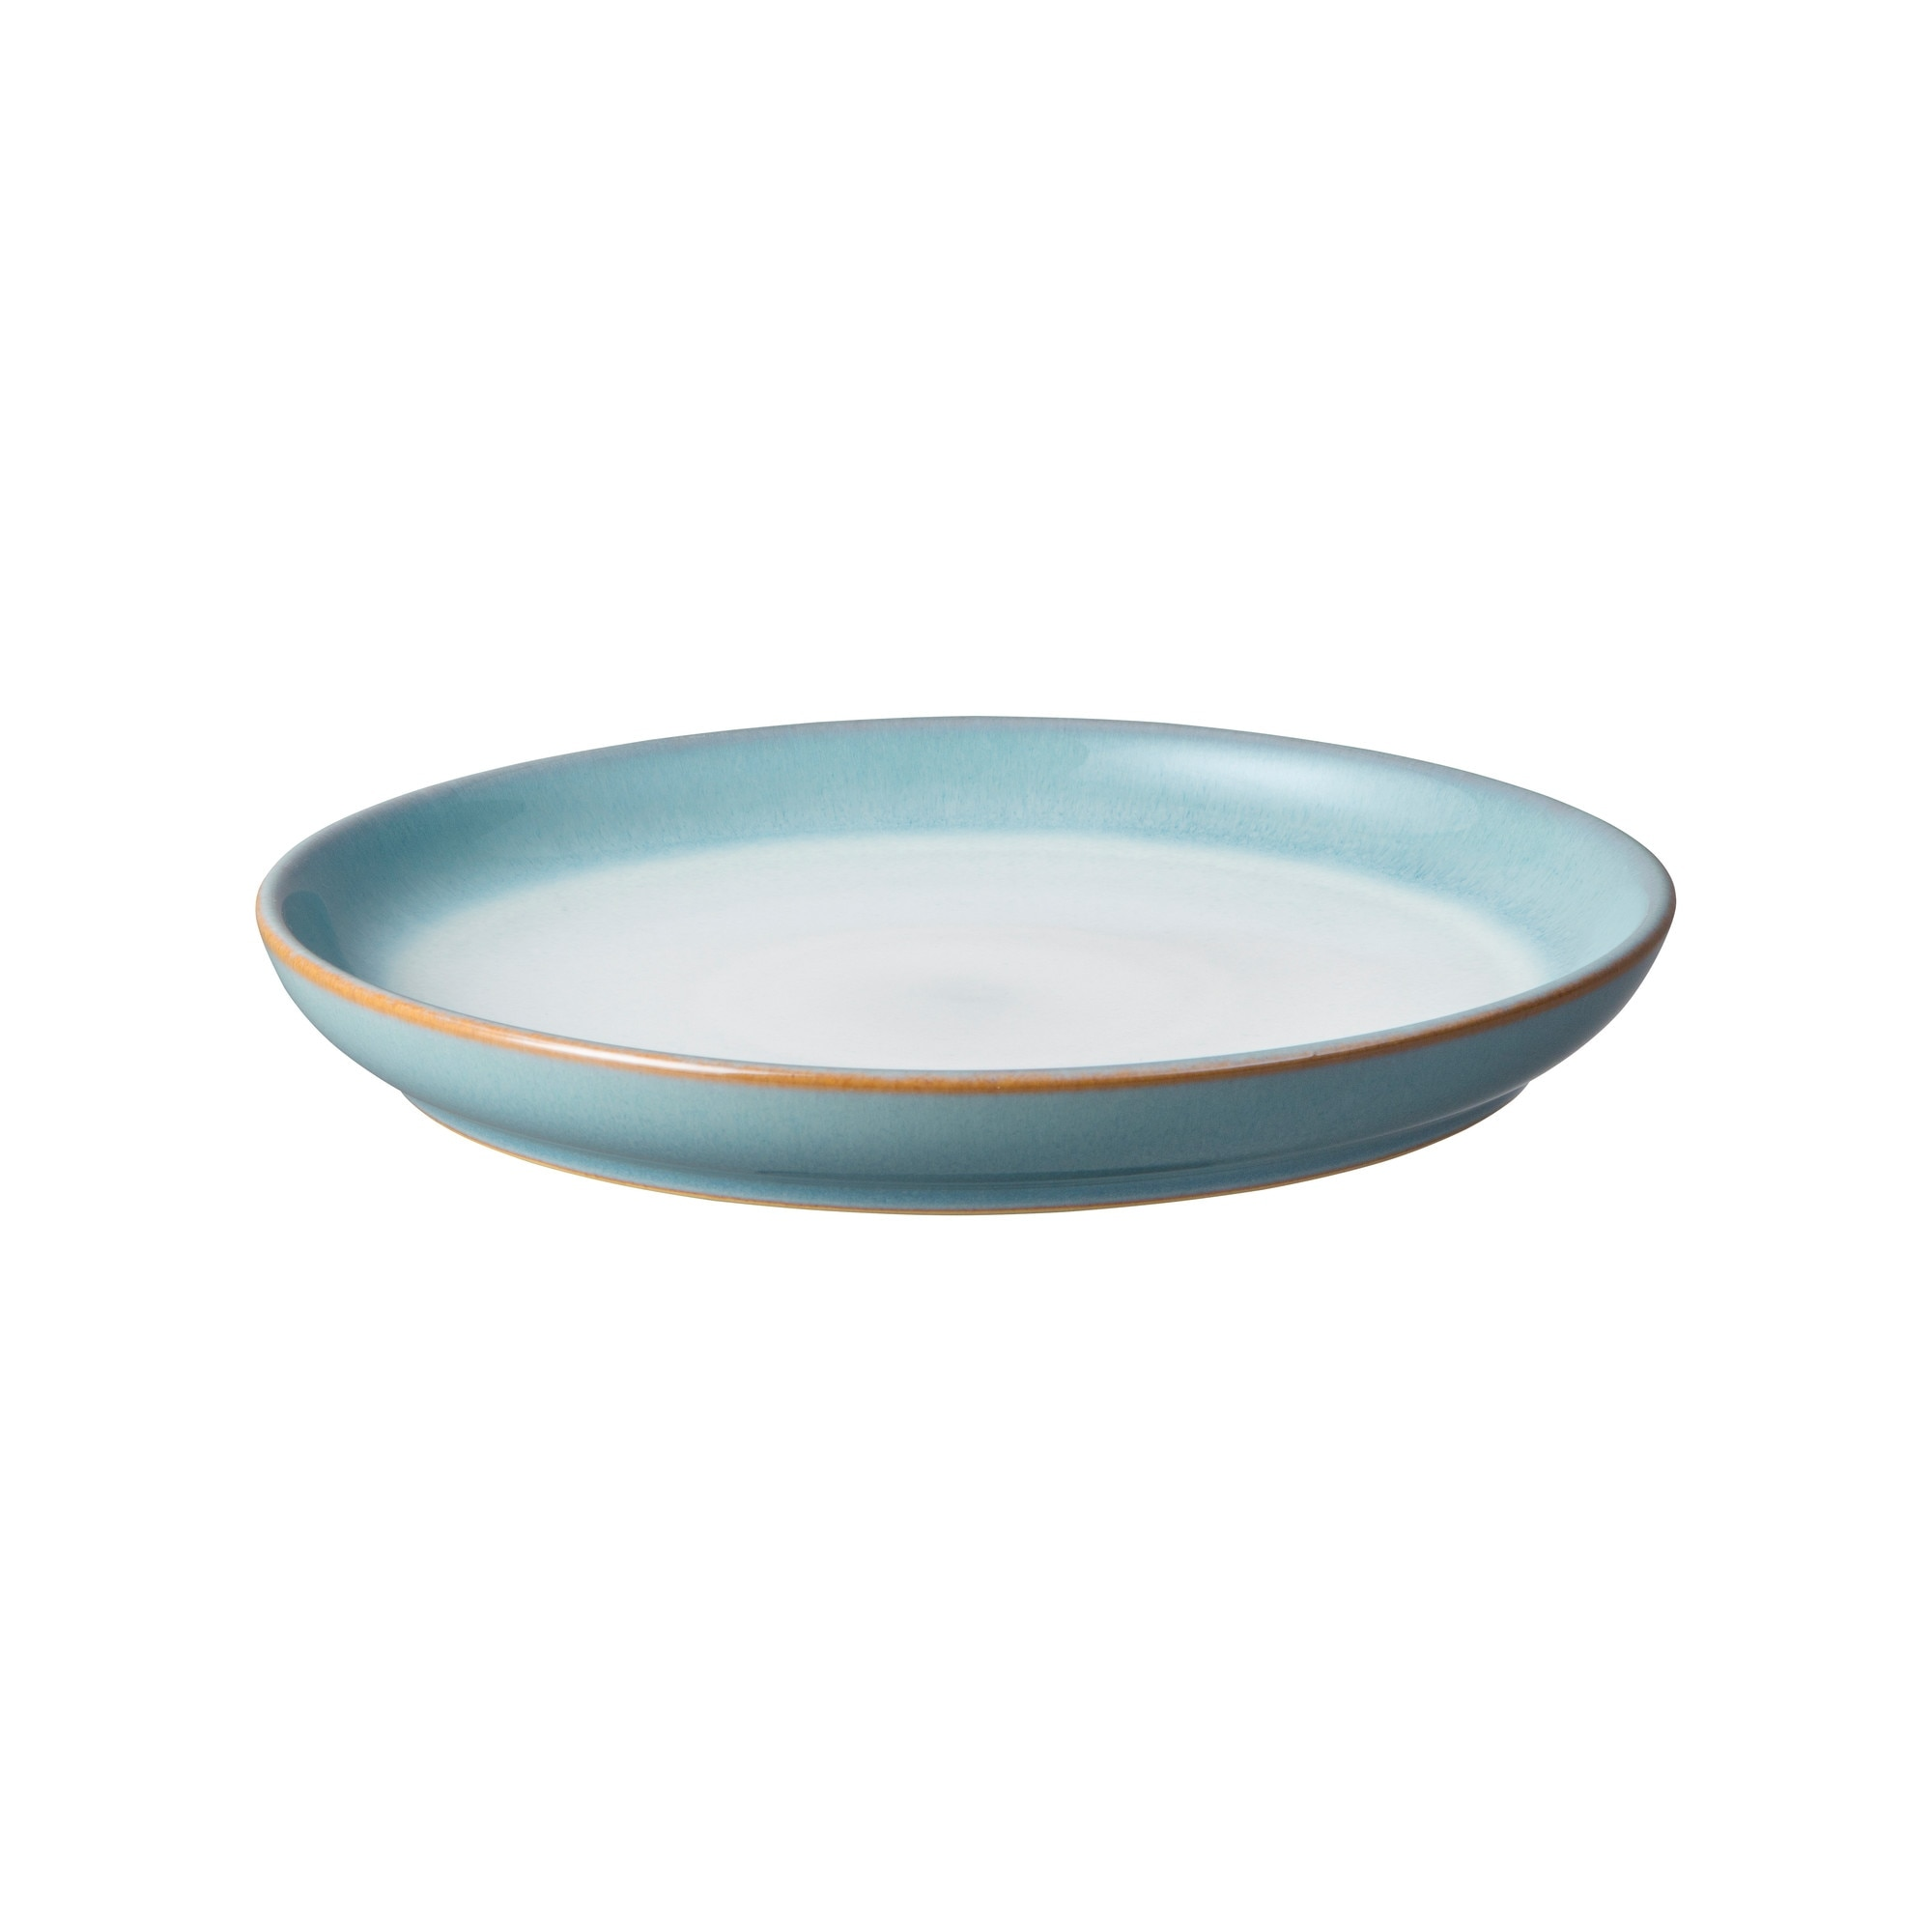 Compare prices for Azure Haze Medium Coupe Plate